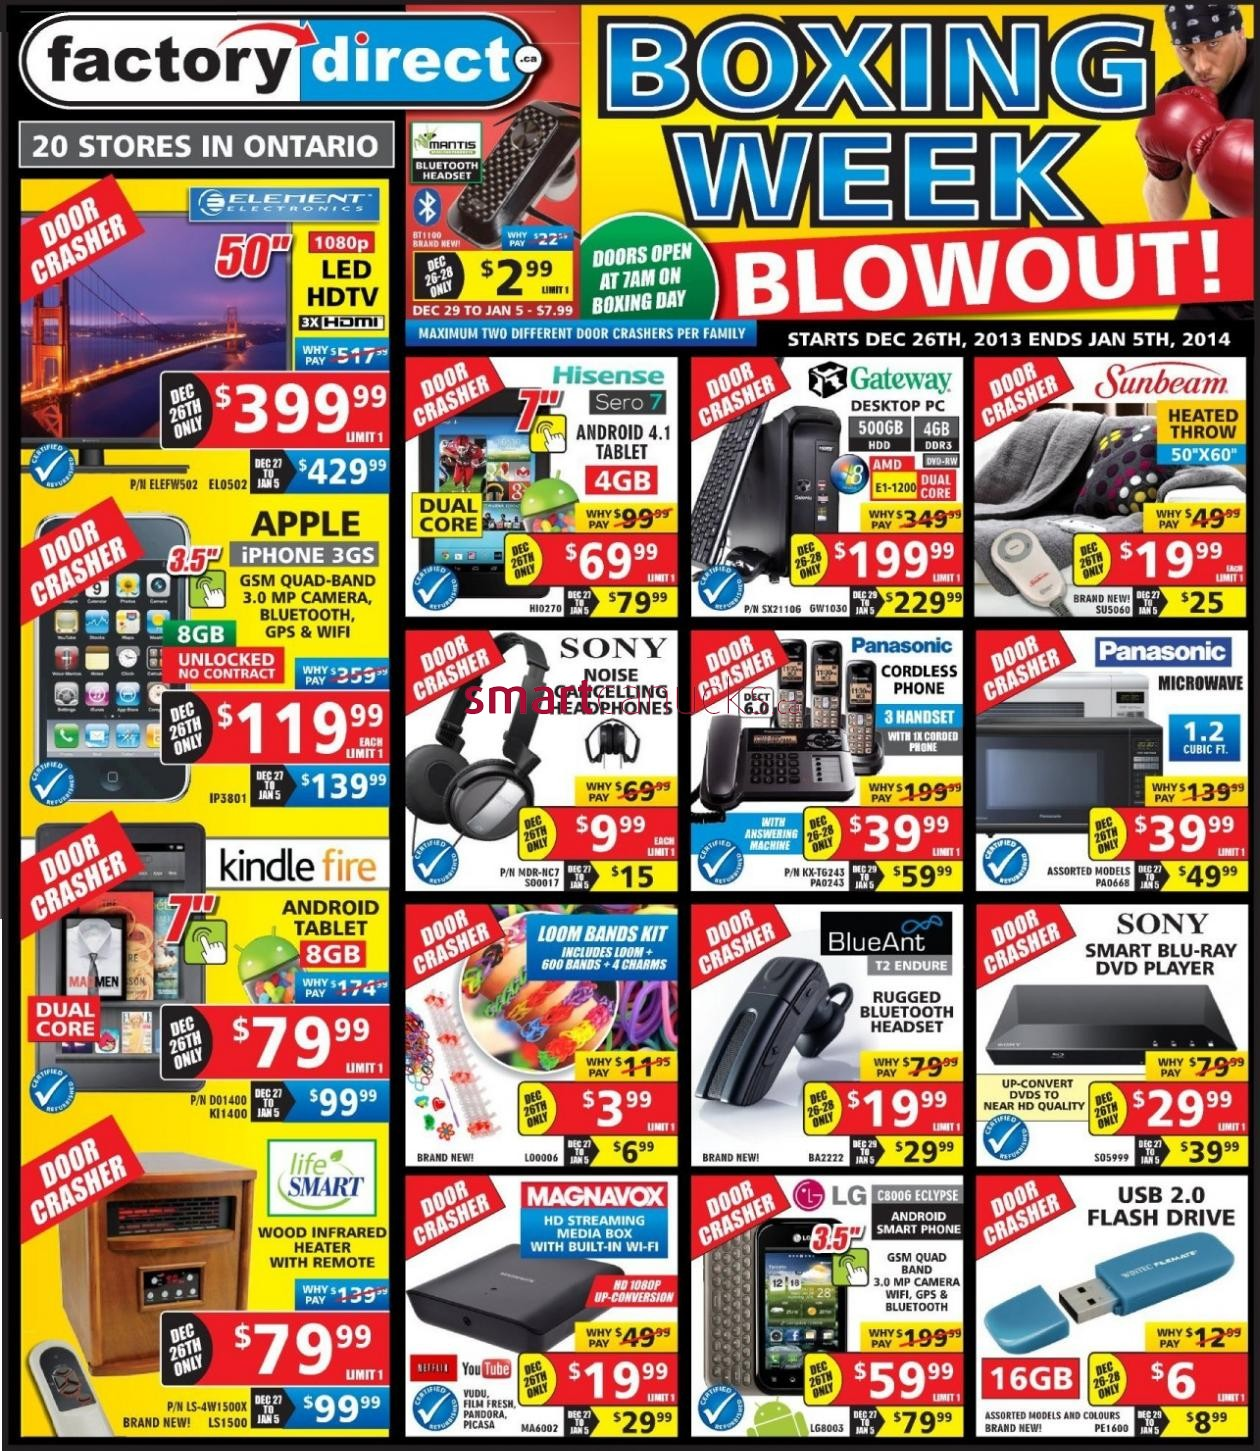 factory direct boxing week flyer sales and deals canada 2013 boxing day canada